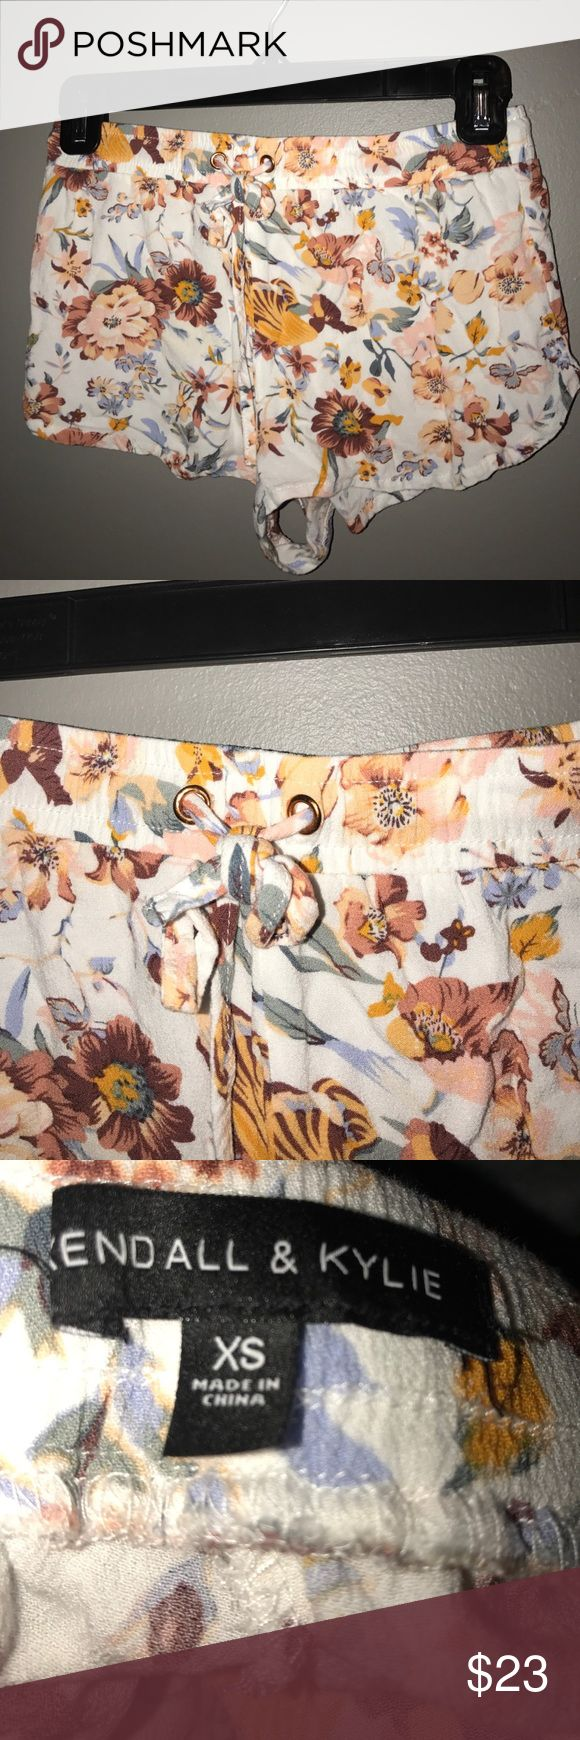 Kendall & Kylie Shorts i actually love these. but they are too small for me now & i've worn these quite a bit but they are in very good shape & there are not any stains, rips, or fuzz. Kendall & Kylie Shorts